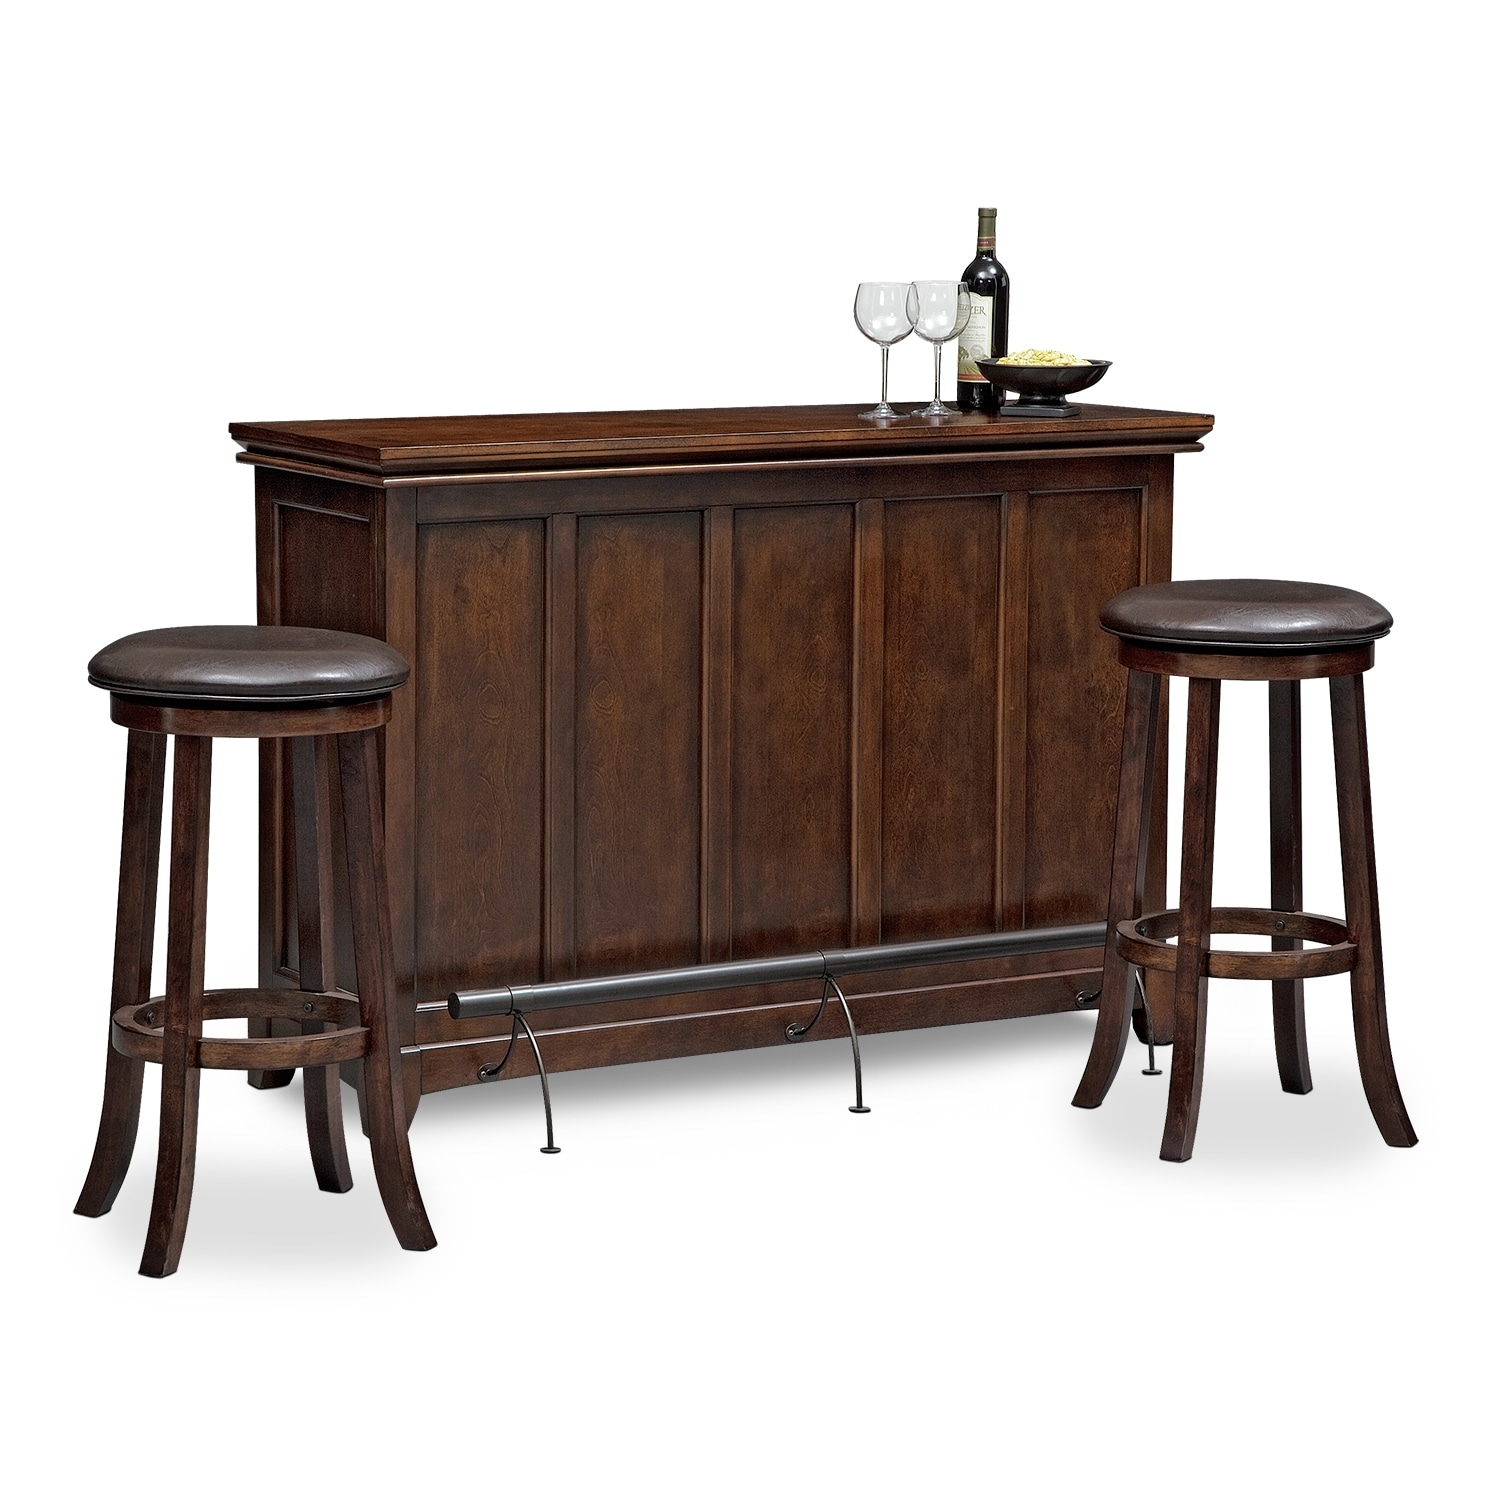 Accent and Occasional Furniture - Carlton Tinker 3 Pc. Bar Set